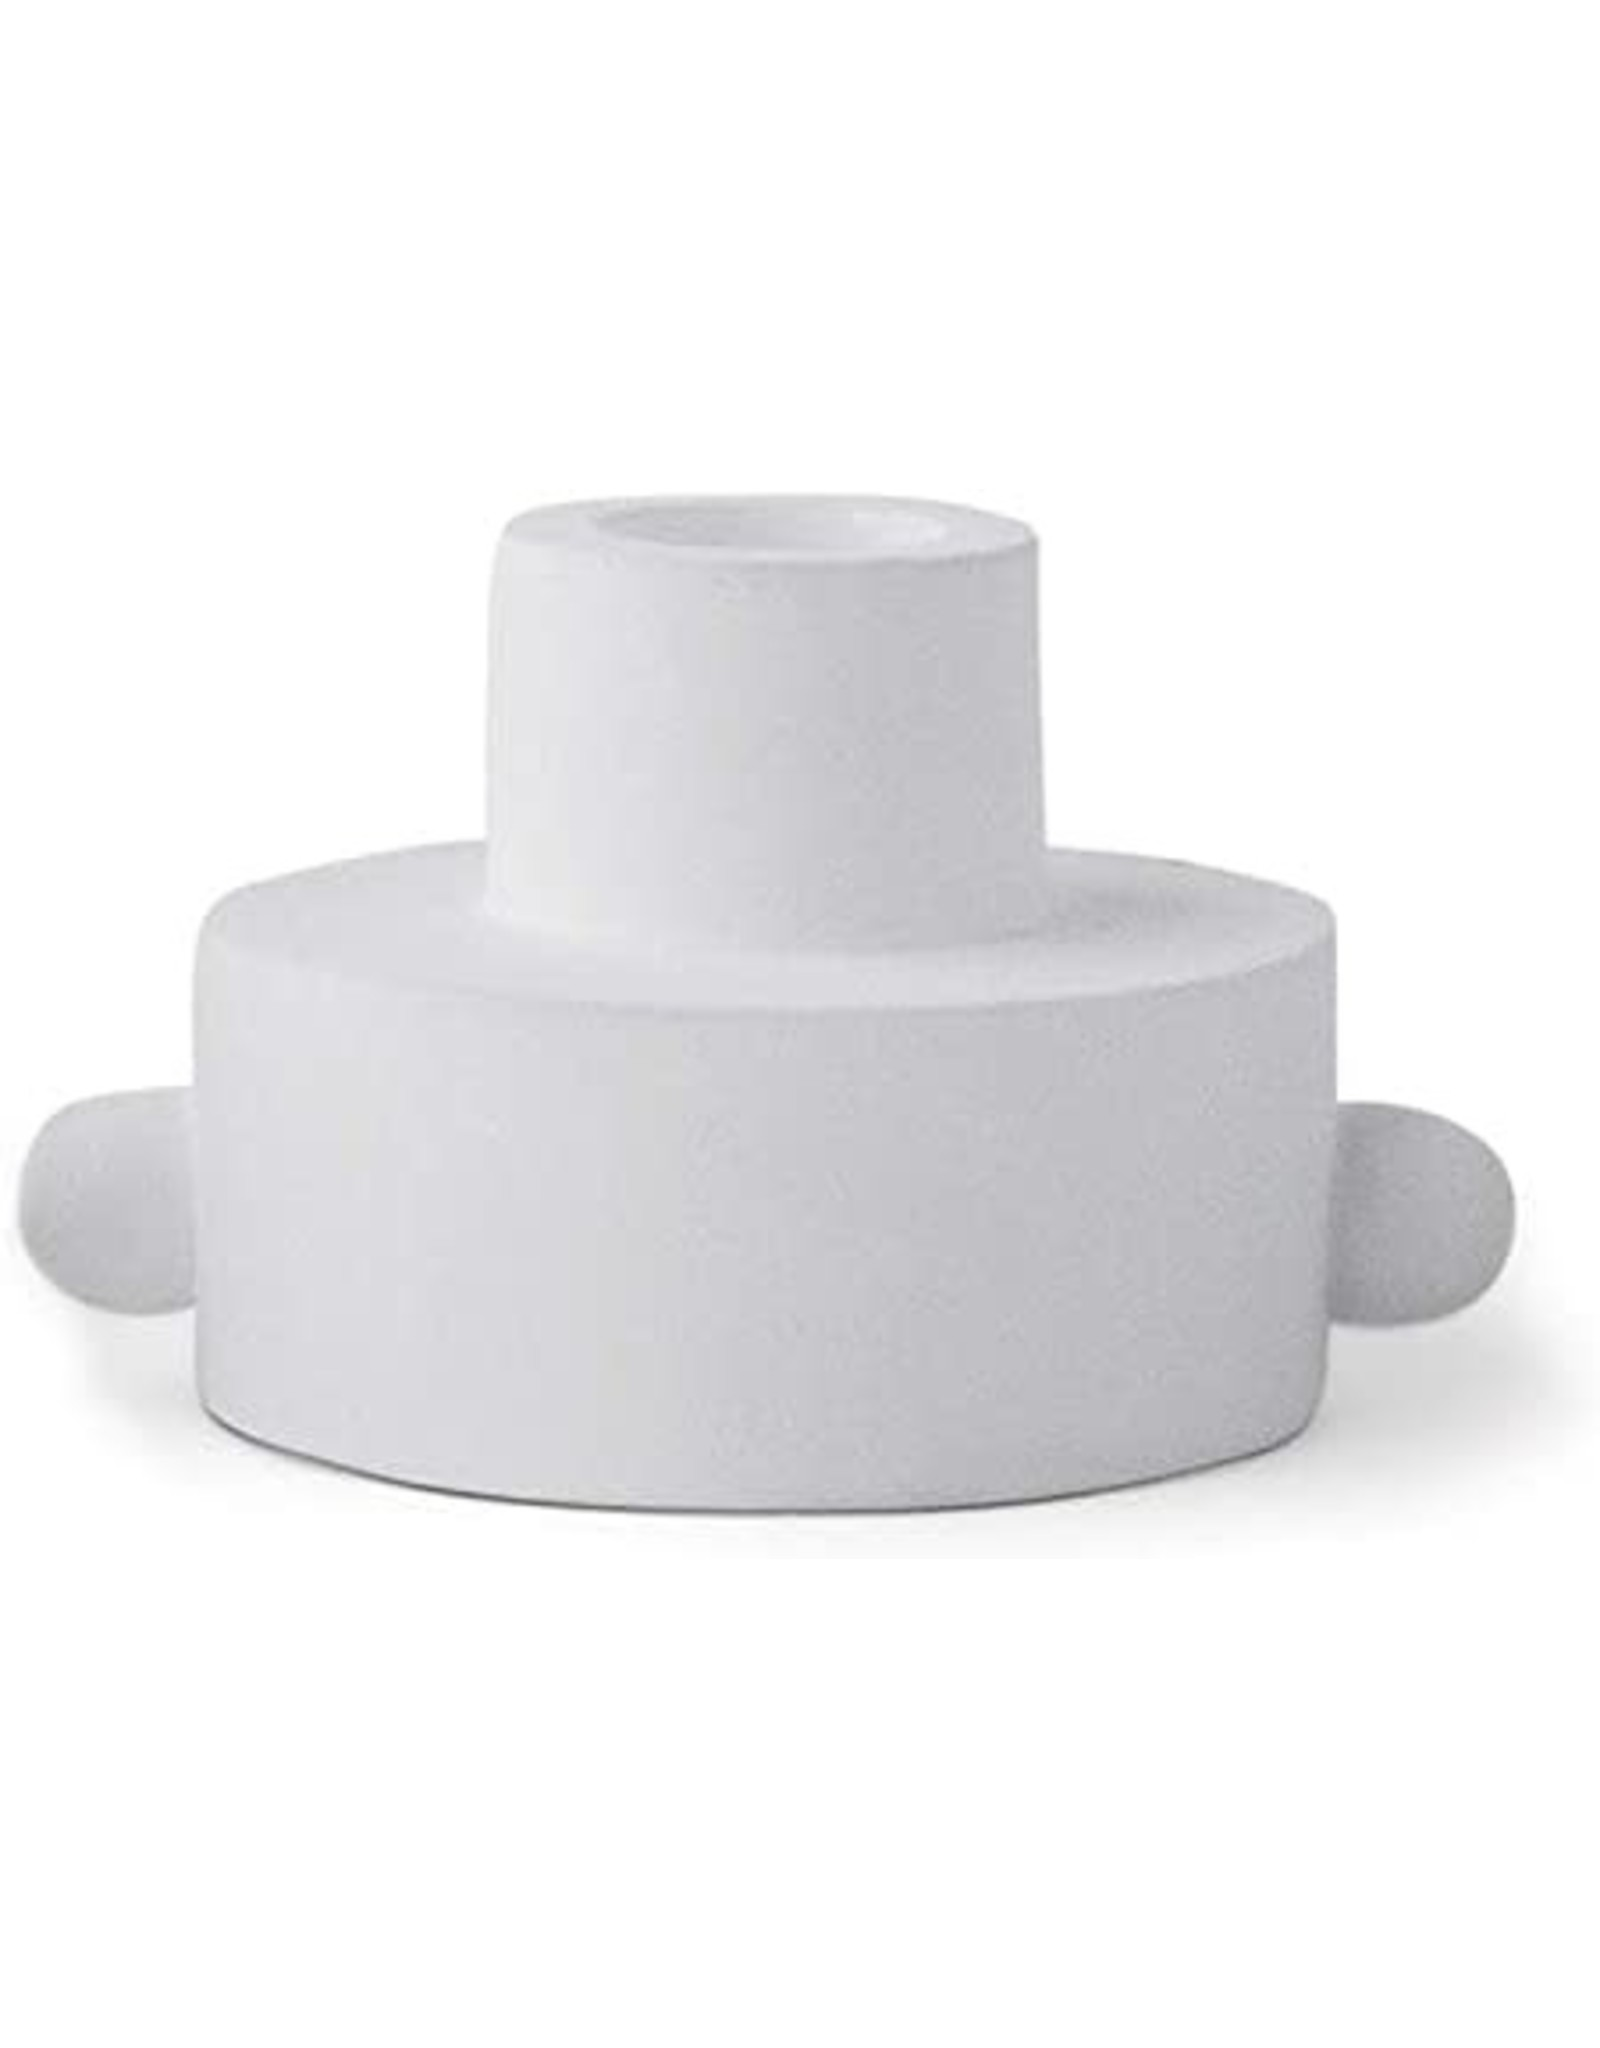 PADDYWAX PADDYWAX TAPER CANDLE HOLDER WITH KNOBS - LIGHT GREY